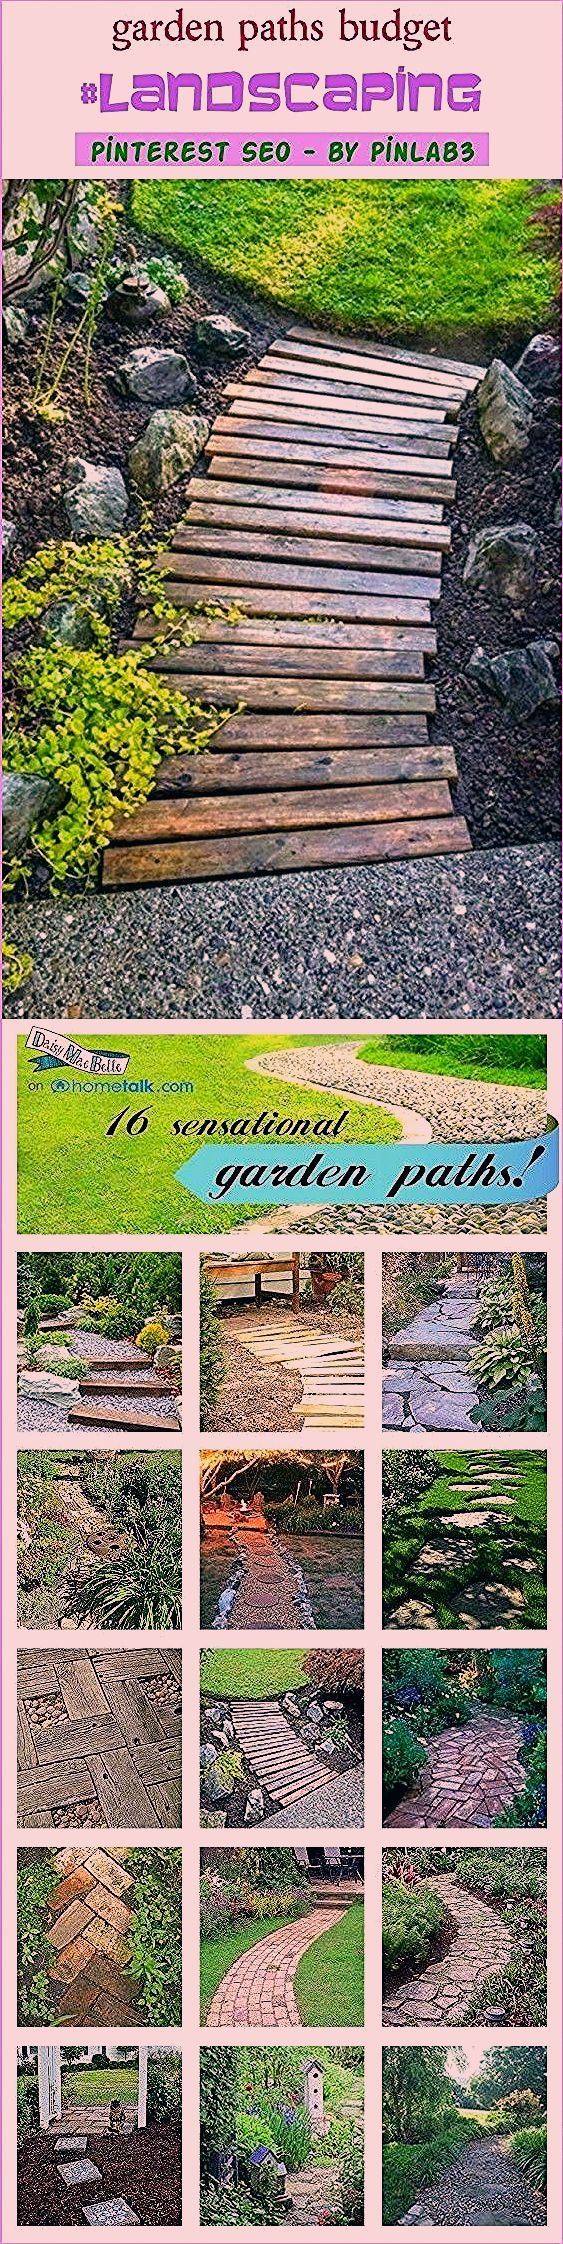 Photo of Garden paths budget #garden #paths #budget #gartenwege #budget #allé